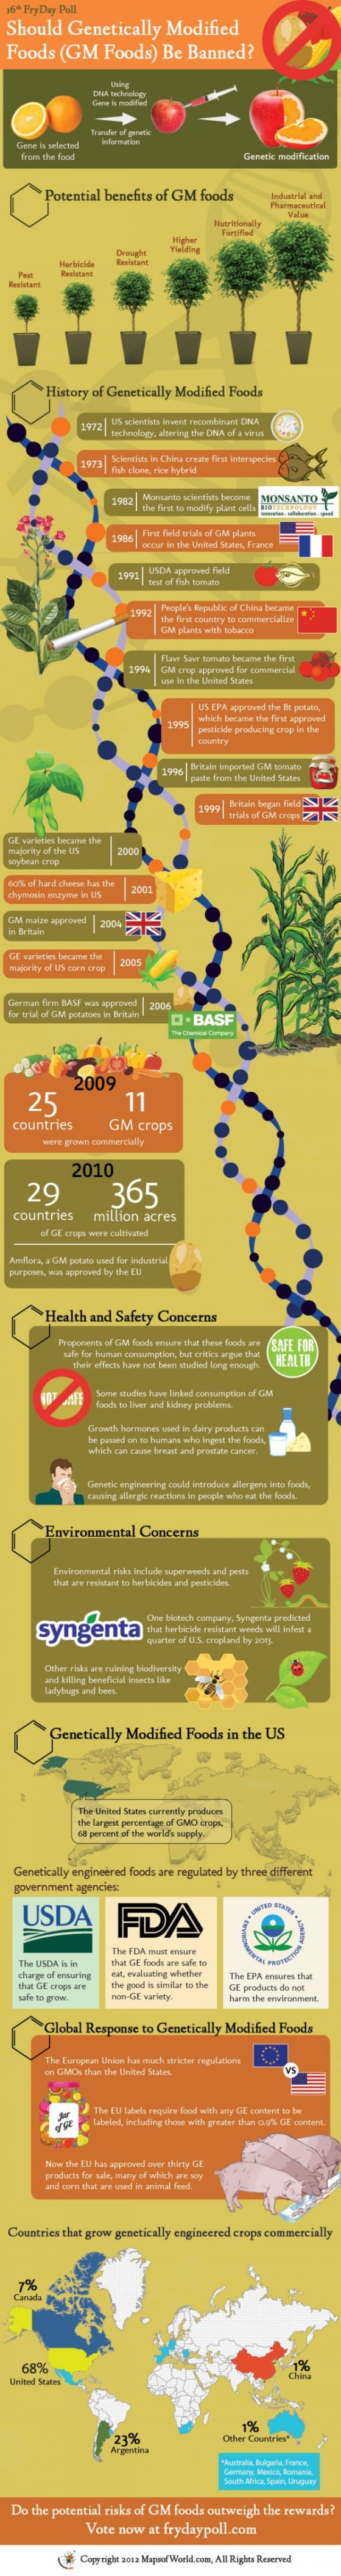 What do you know about GMOs